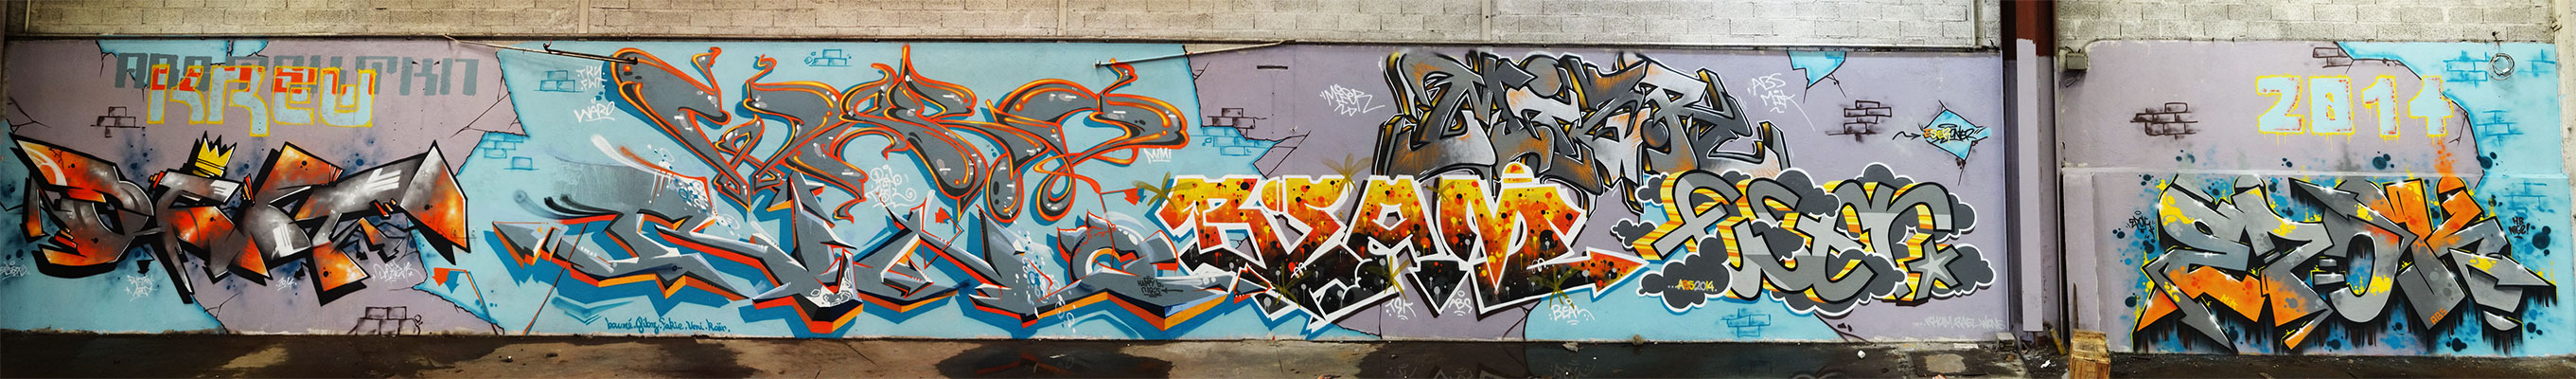 2014_03_deft_rino_waro_beam_miser_esser_epok_brezet_graffiti-fresque